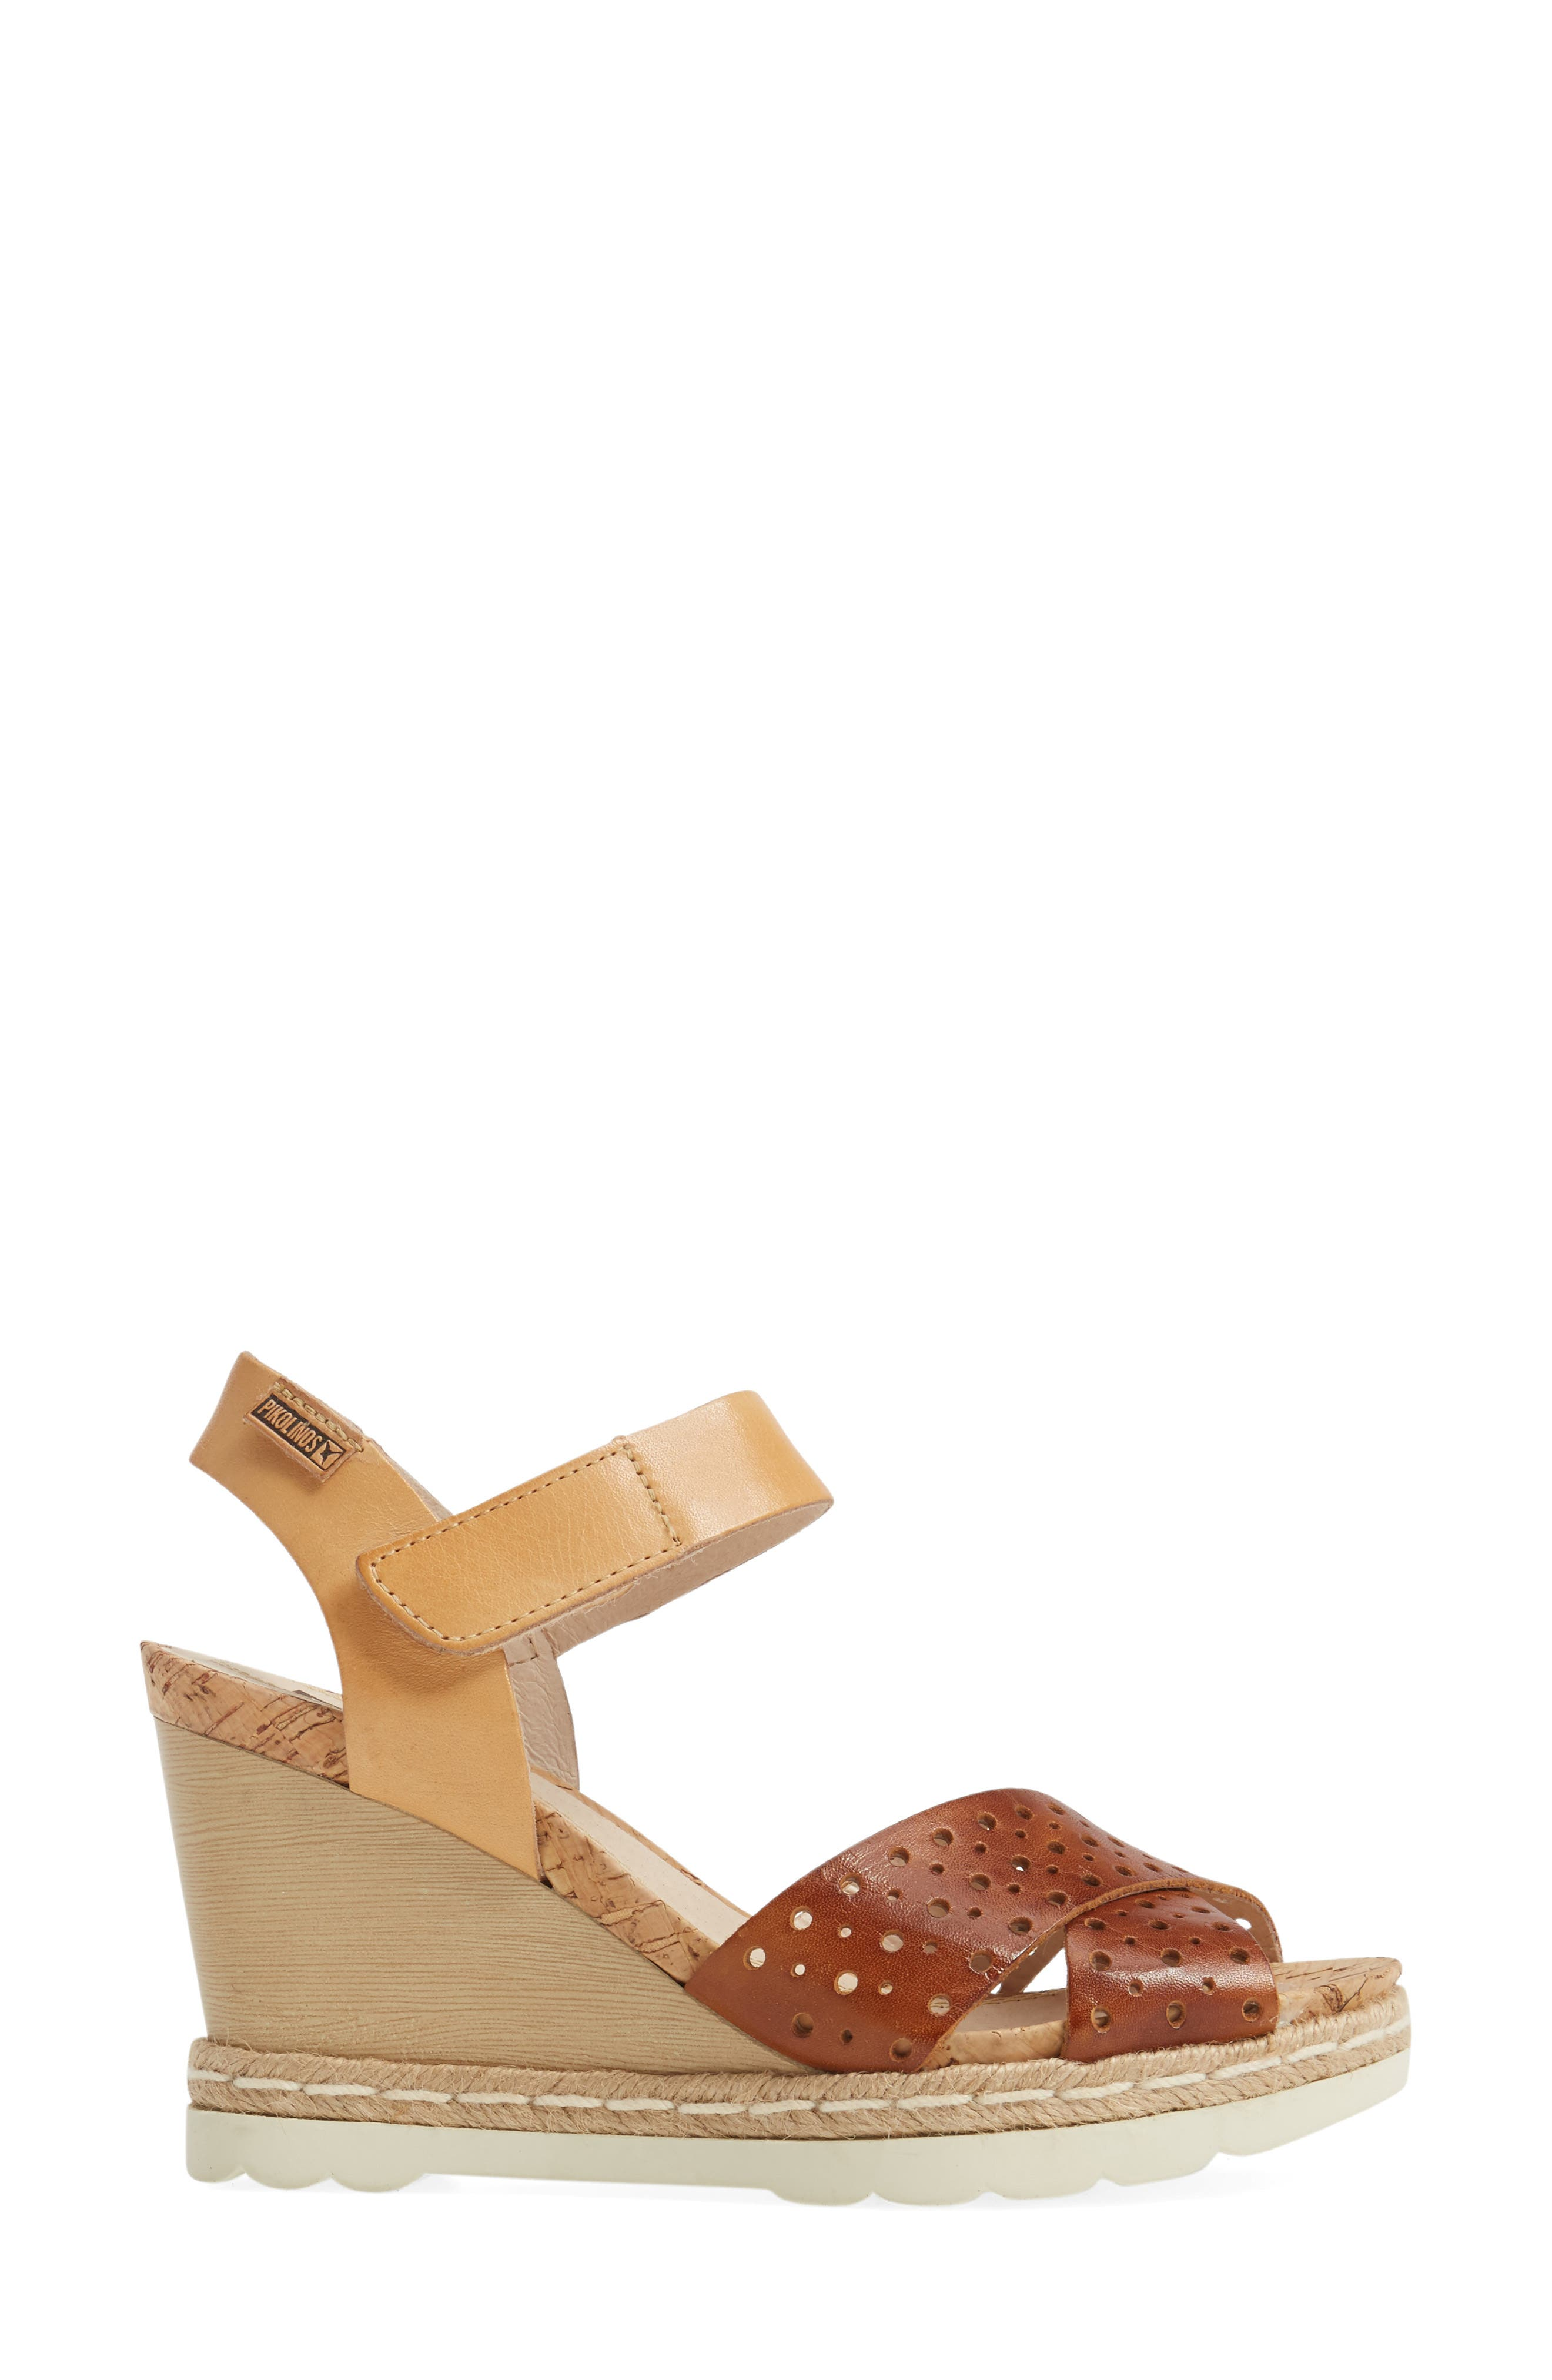 Bali Wedge Sandal,                             Alternate thumbnail 3, color,                             BRANDY CAMEL LEATHER